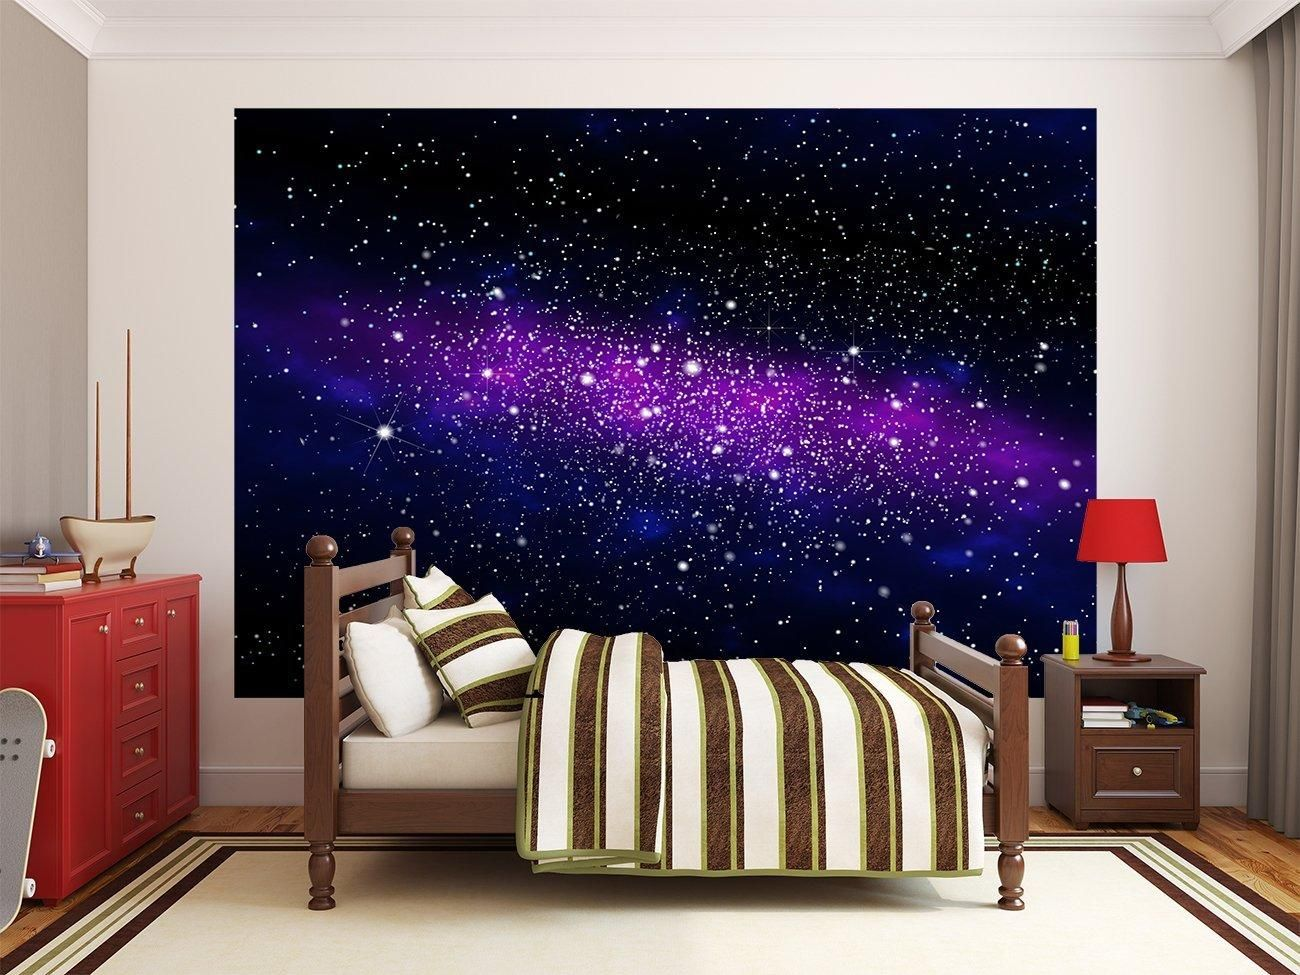 fototapete im weltall galaxie sternenhimmel fototapeten 3d vliestapeten 3d pinterest. Black Bedroom Furniture Sets. Home Design Ideas